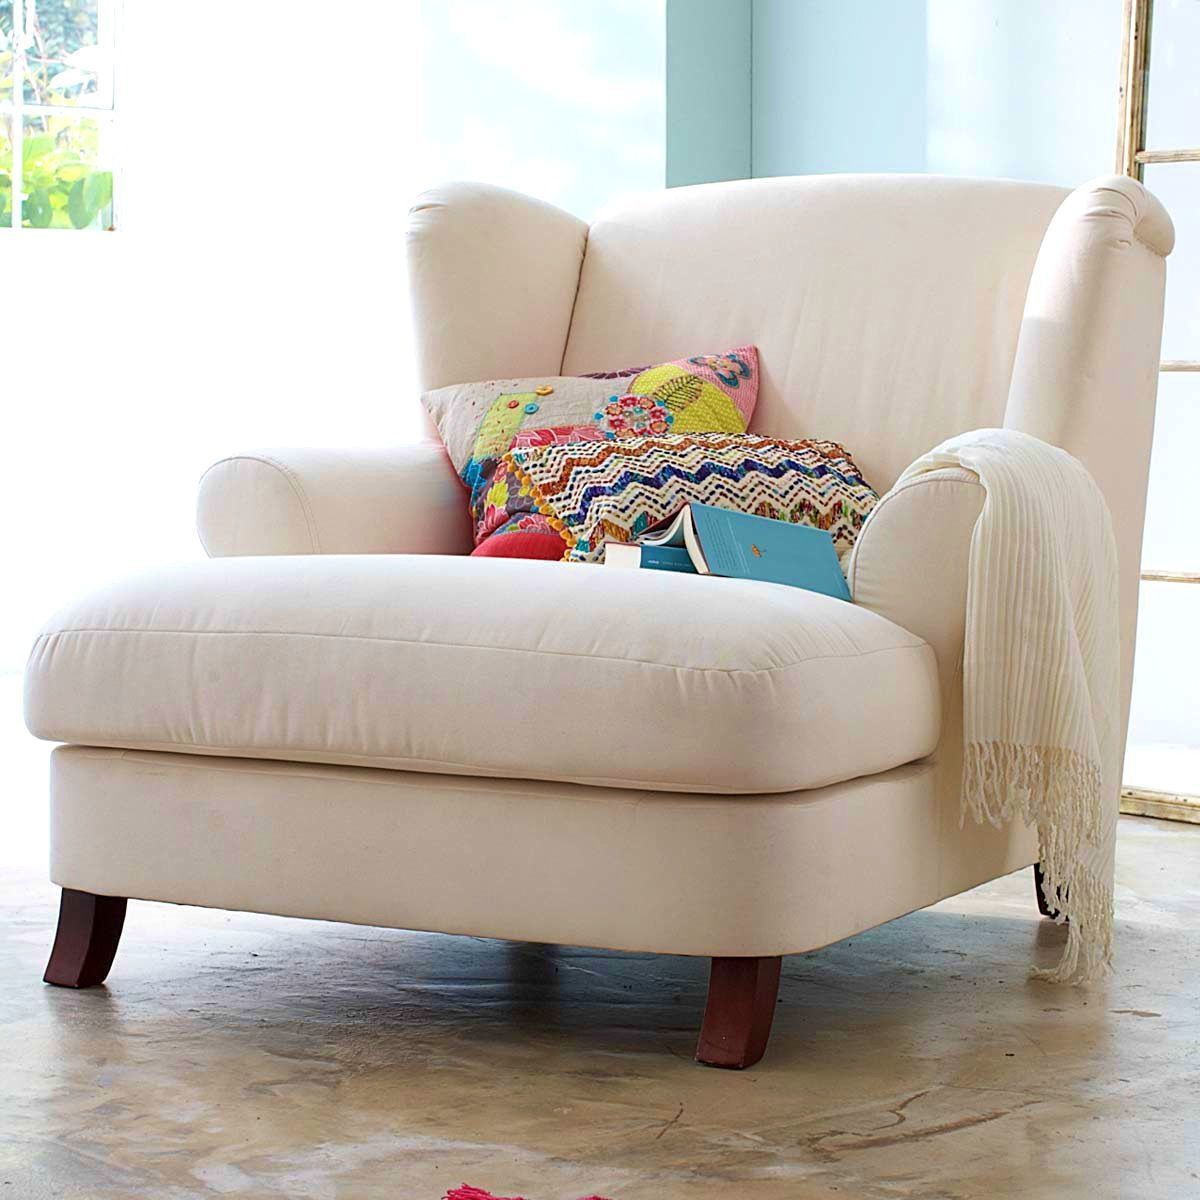 Bon Bedroom:Sweet Images About Reading Chair Chairs Comfy For Classroom  Acdfbfcfdf Kids With Ottoman Big